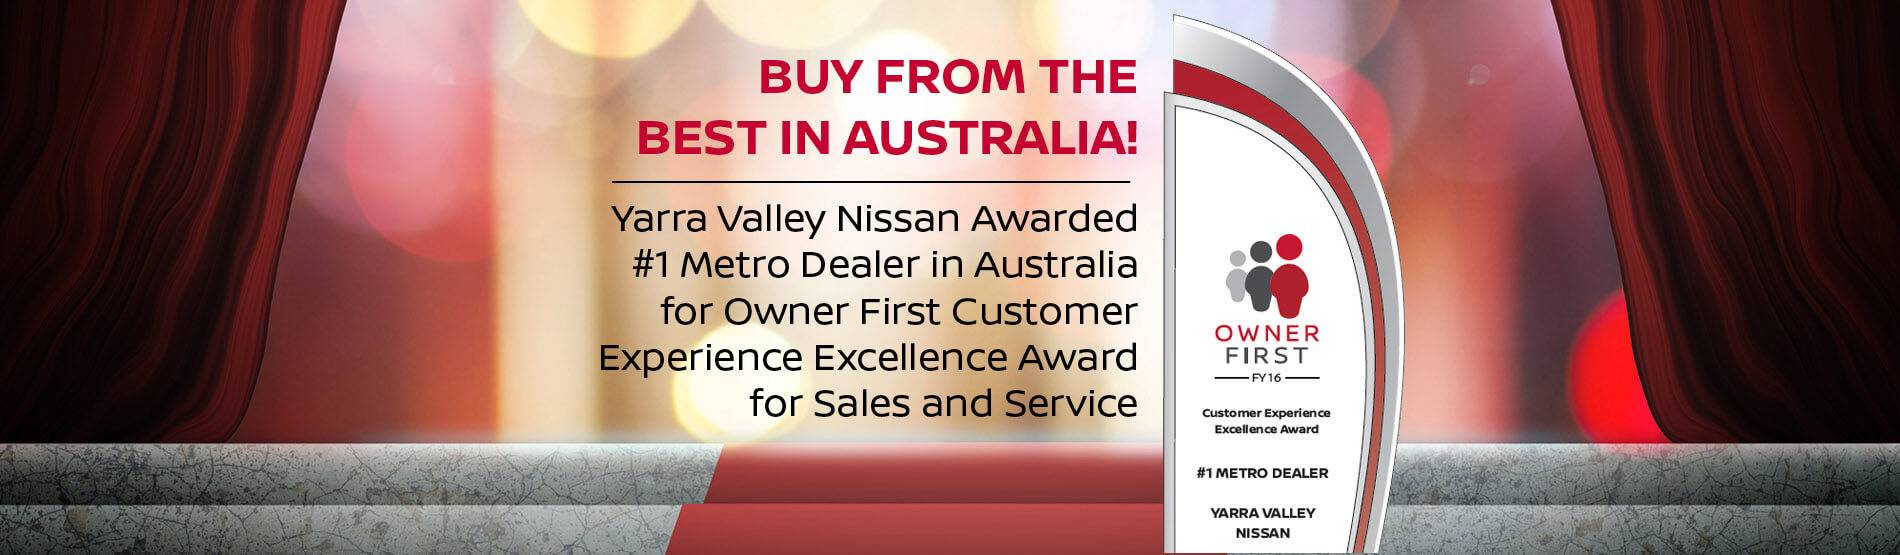 Buy from the Best in Australia!